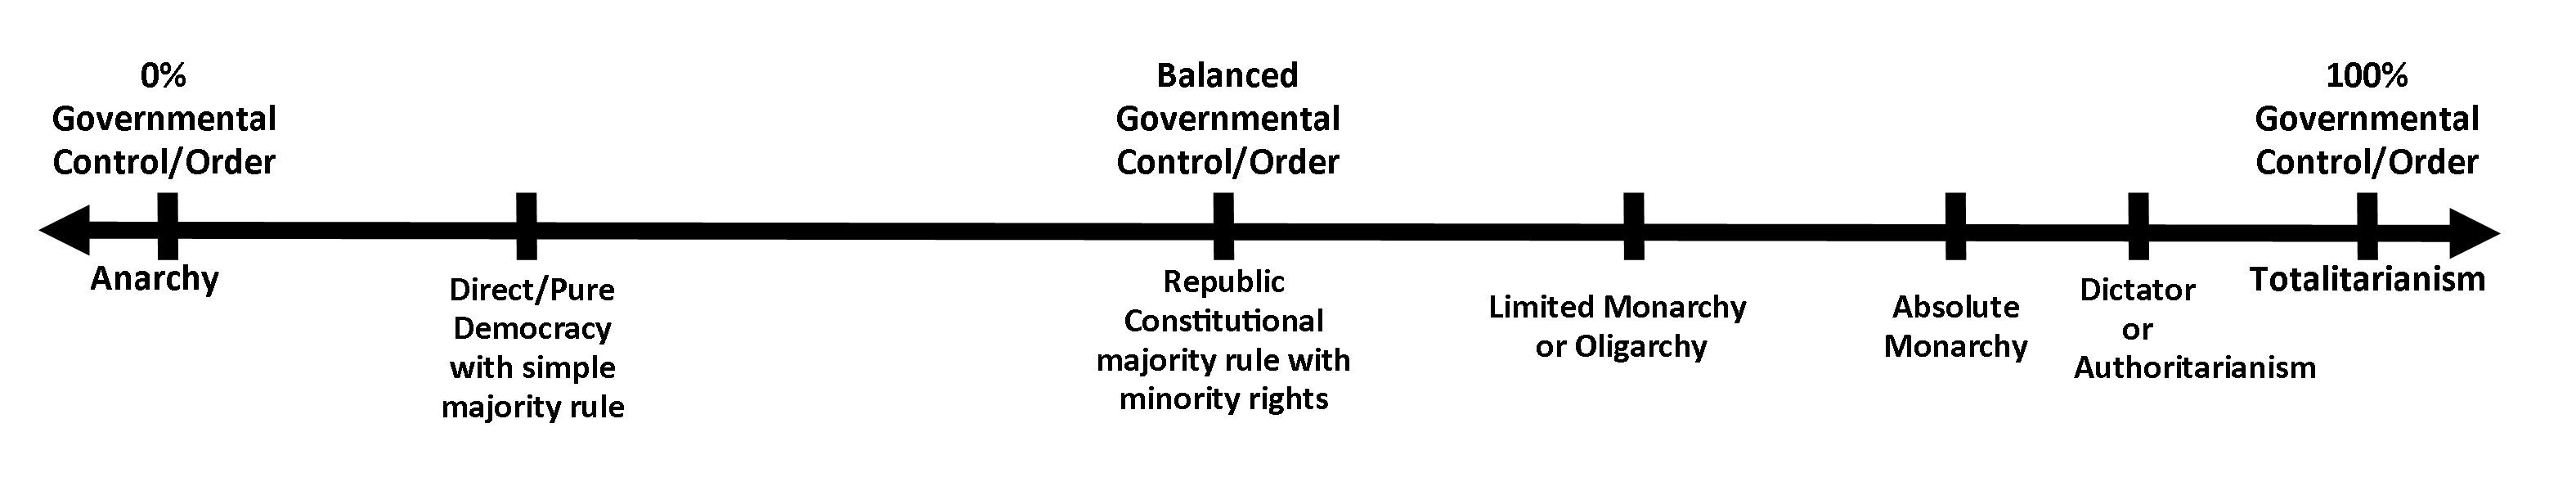 Arrow chart showing anarchy at 0% control to totalitarianism at 100% control.